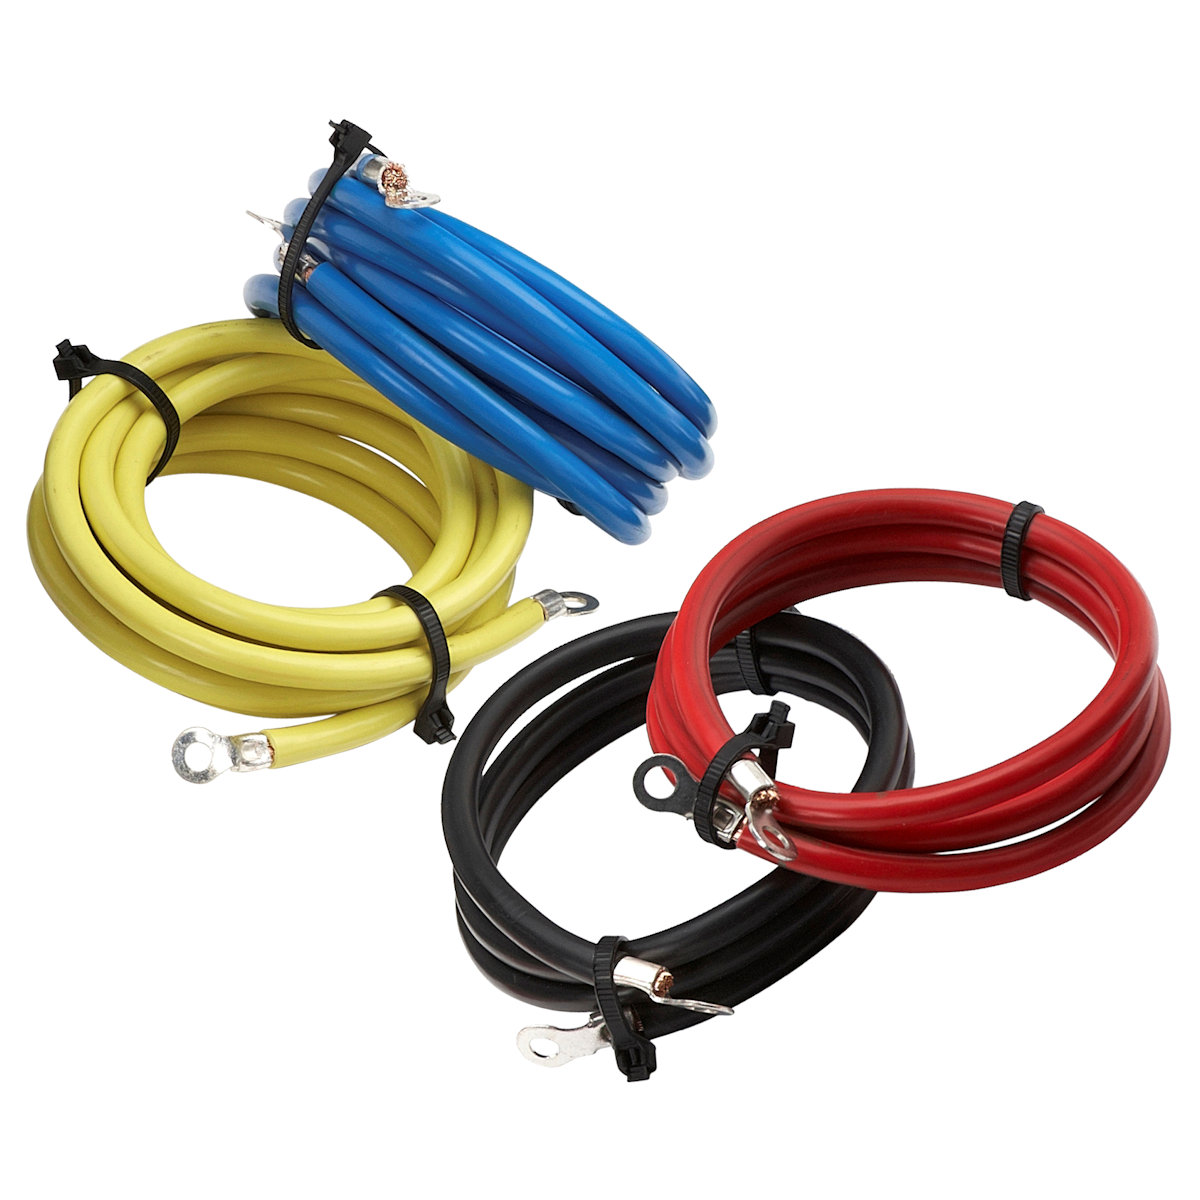 hight resolution of viper atv utv wiring pack technical support winch wiring setup moto alliance